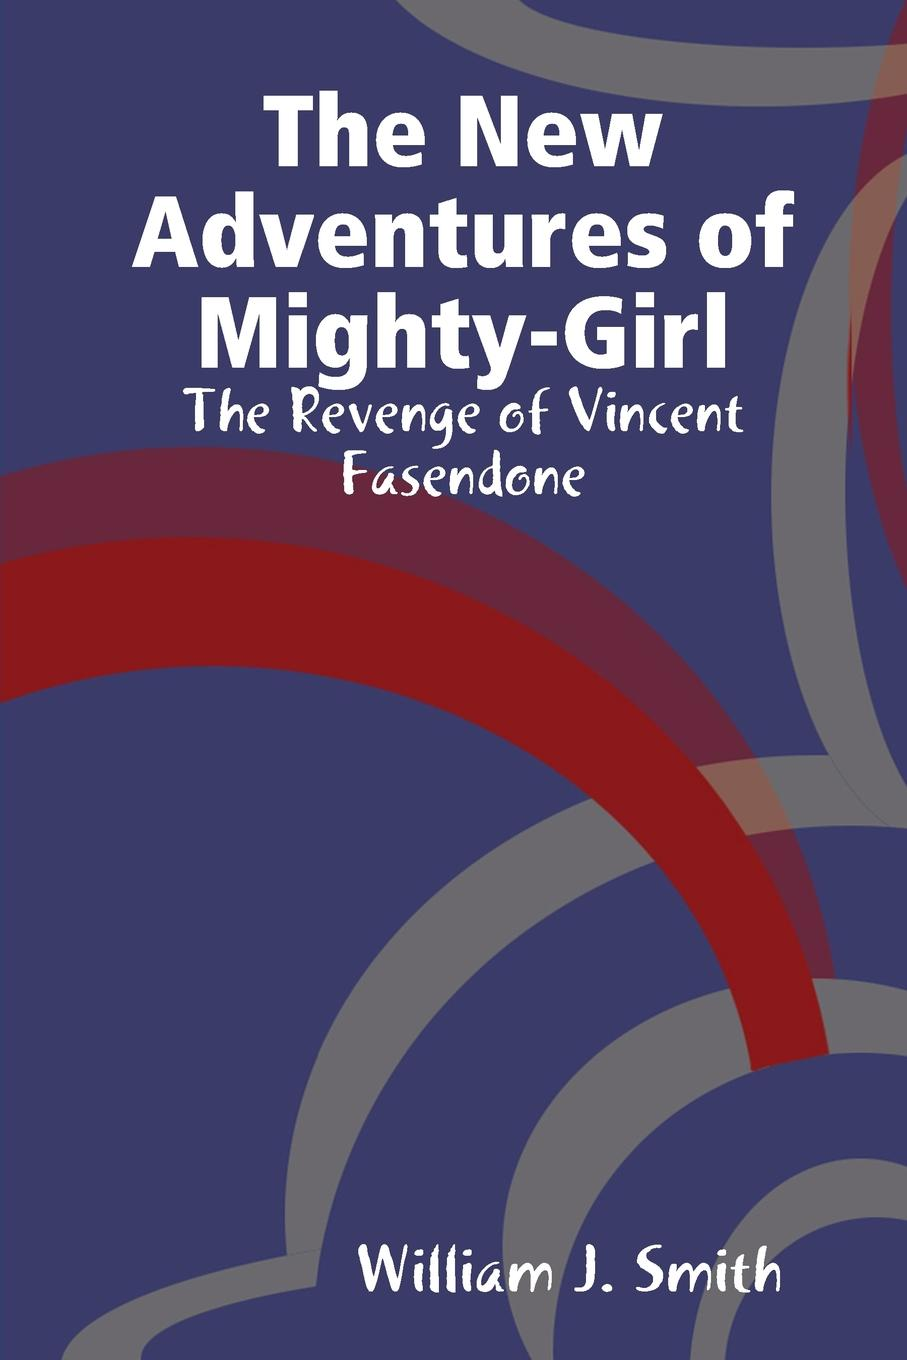 лучшая цена William J. Smith The New Adventures of Mighty-Girl. The Revenge of Vincent Fasendone